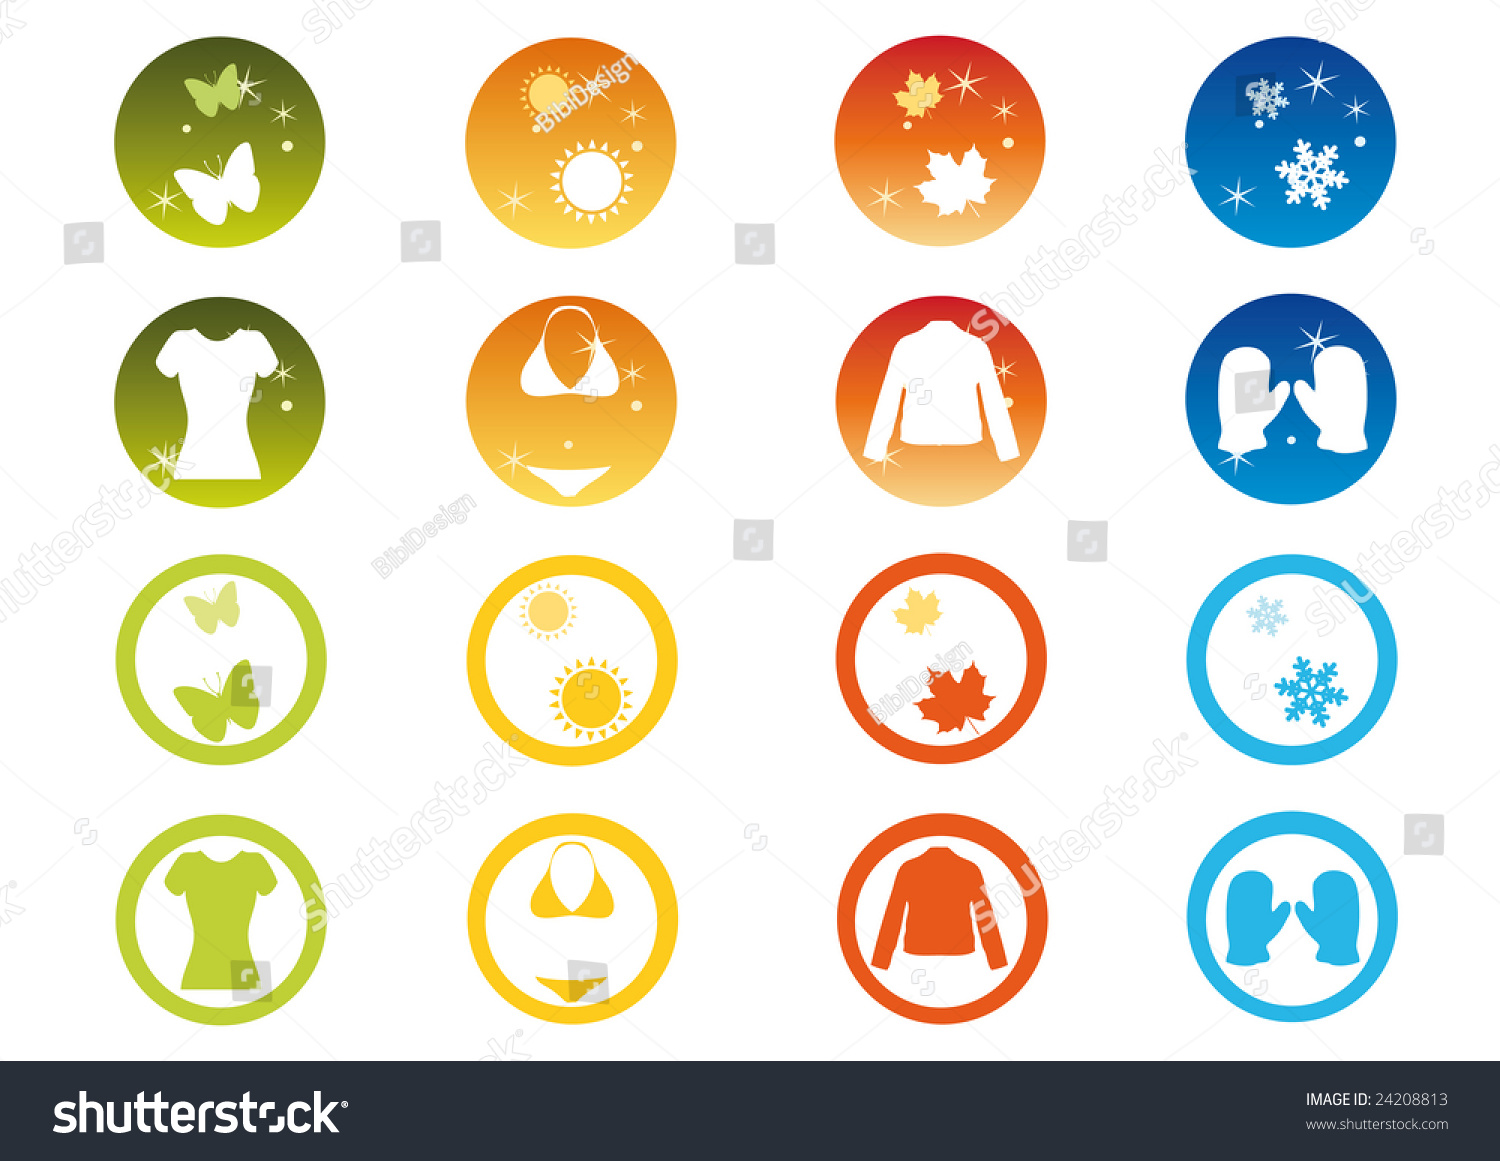 Clothing symbols winter autumn spring summer stock vector 24208813 clothing and symbols of winter autumn spring and summer biocorpaavc